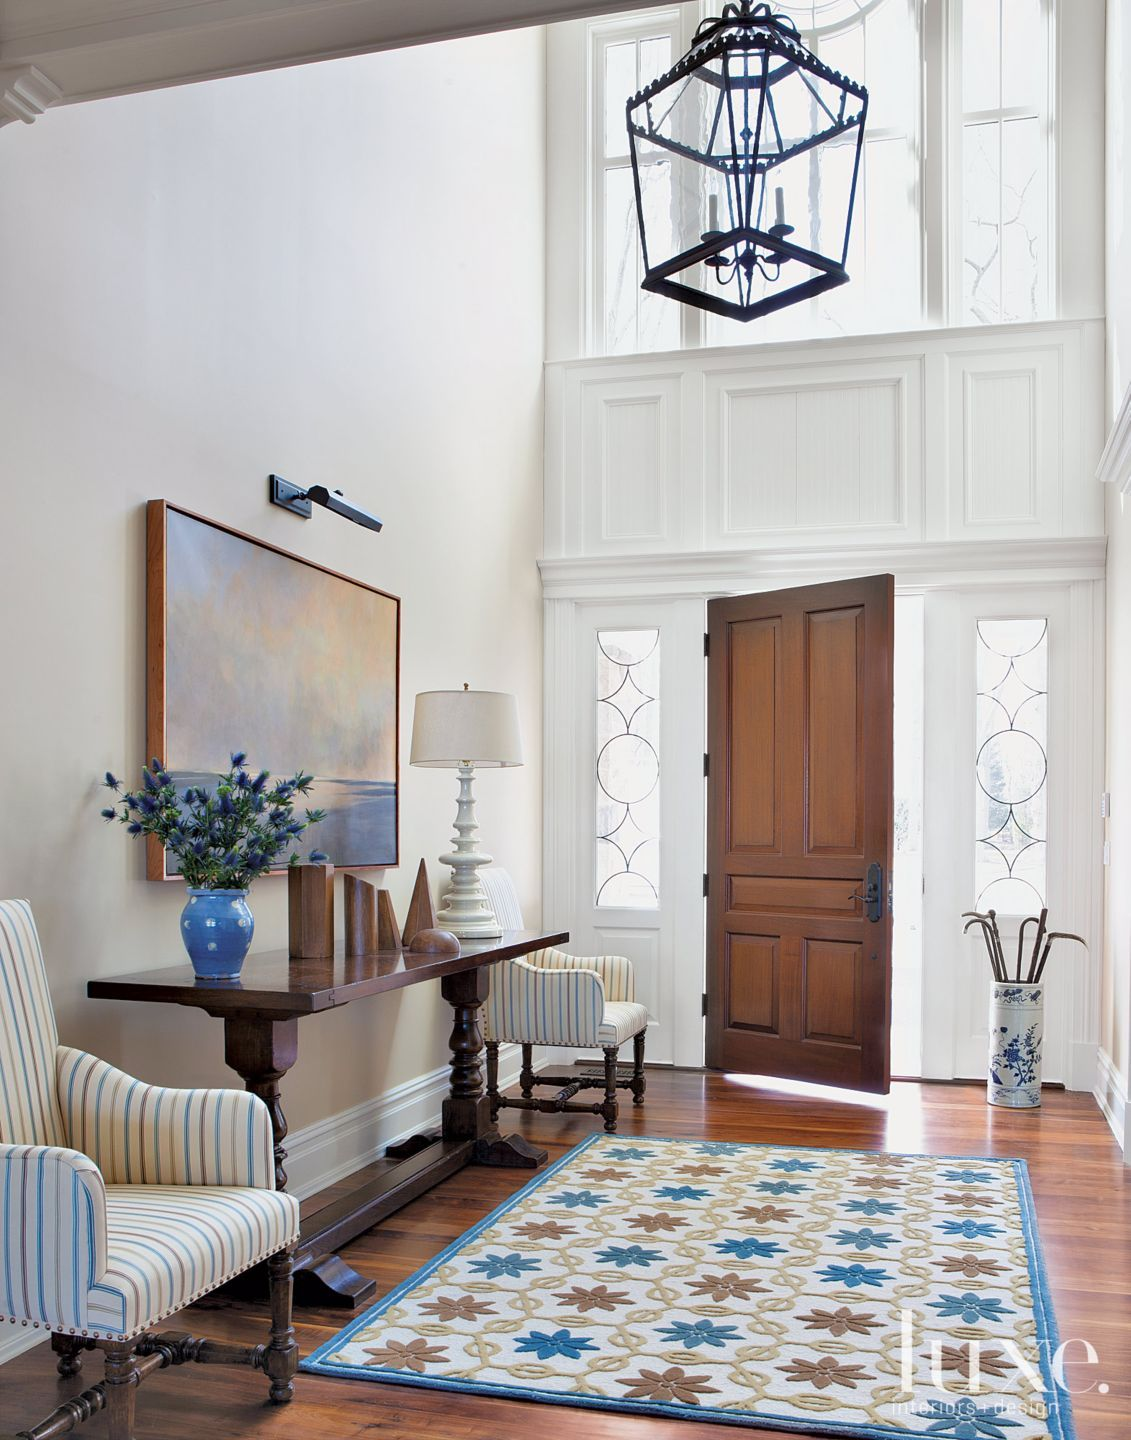 Entry Room Design: Traditional White Entry Hall With High Ceiling